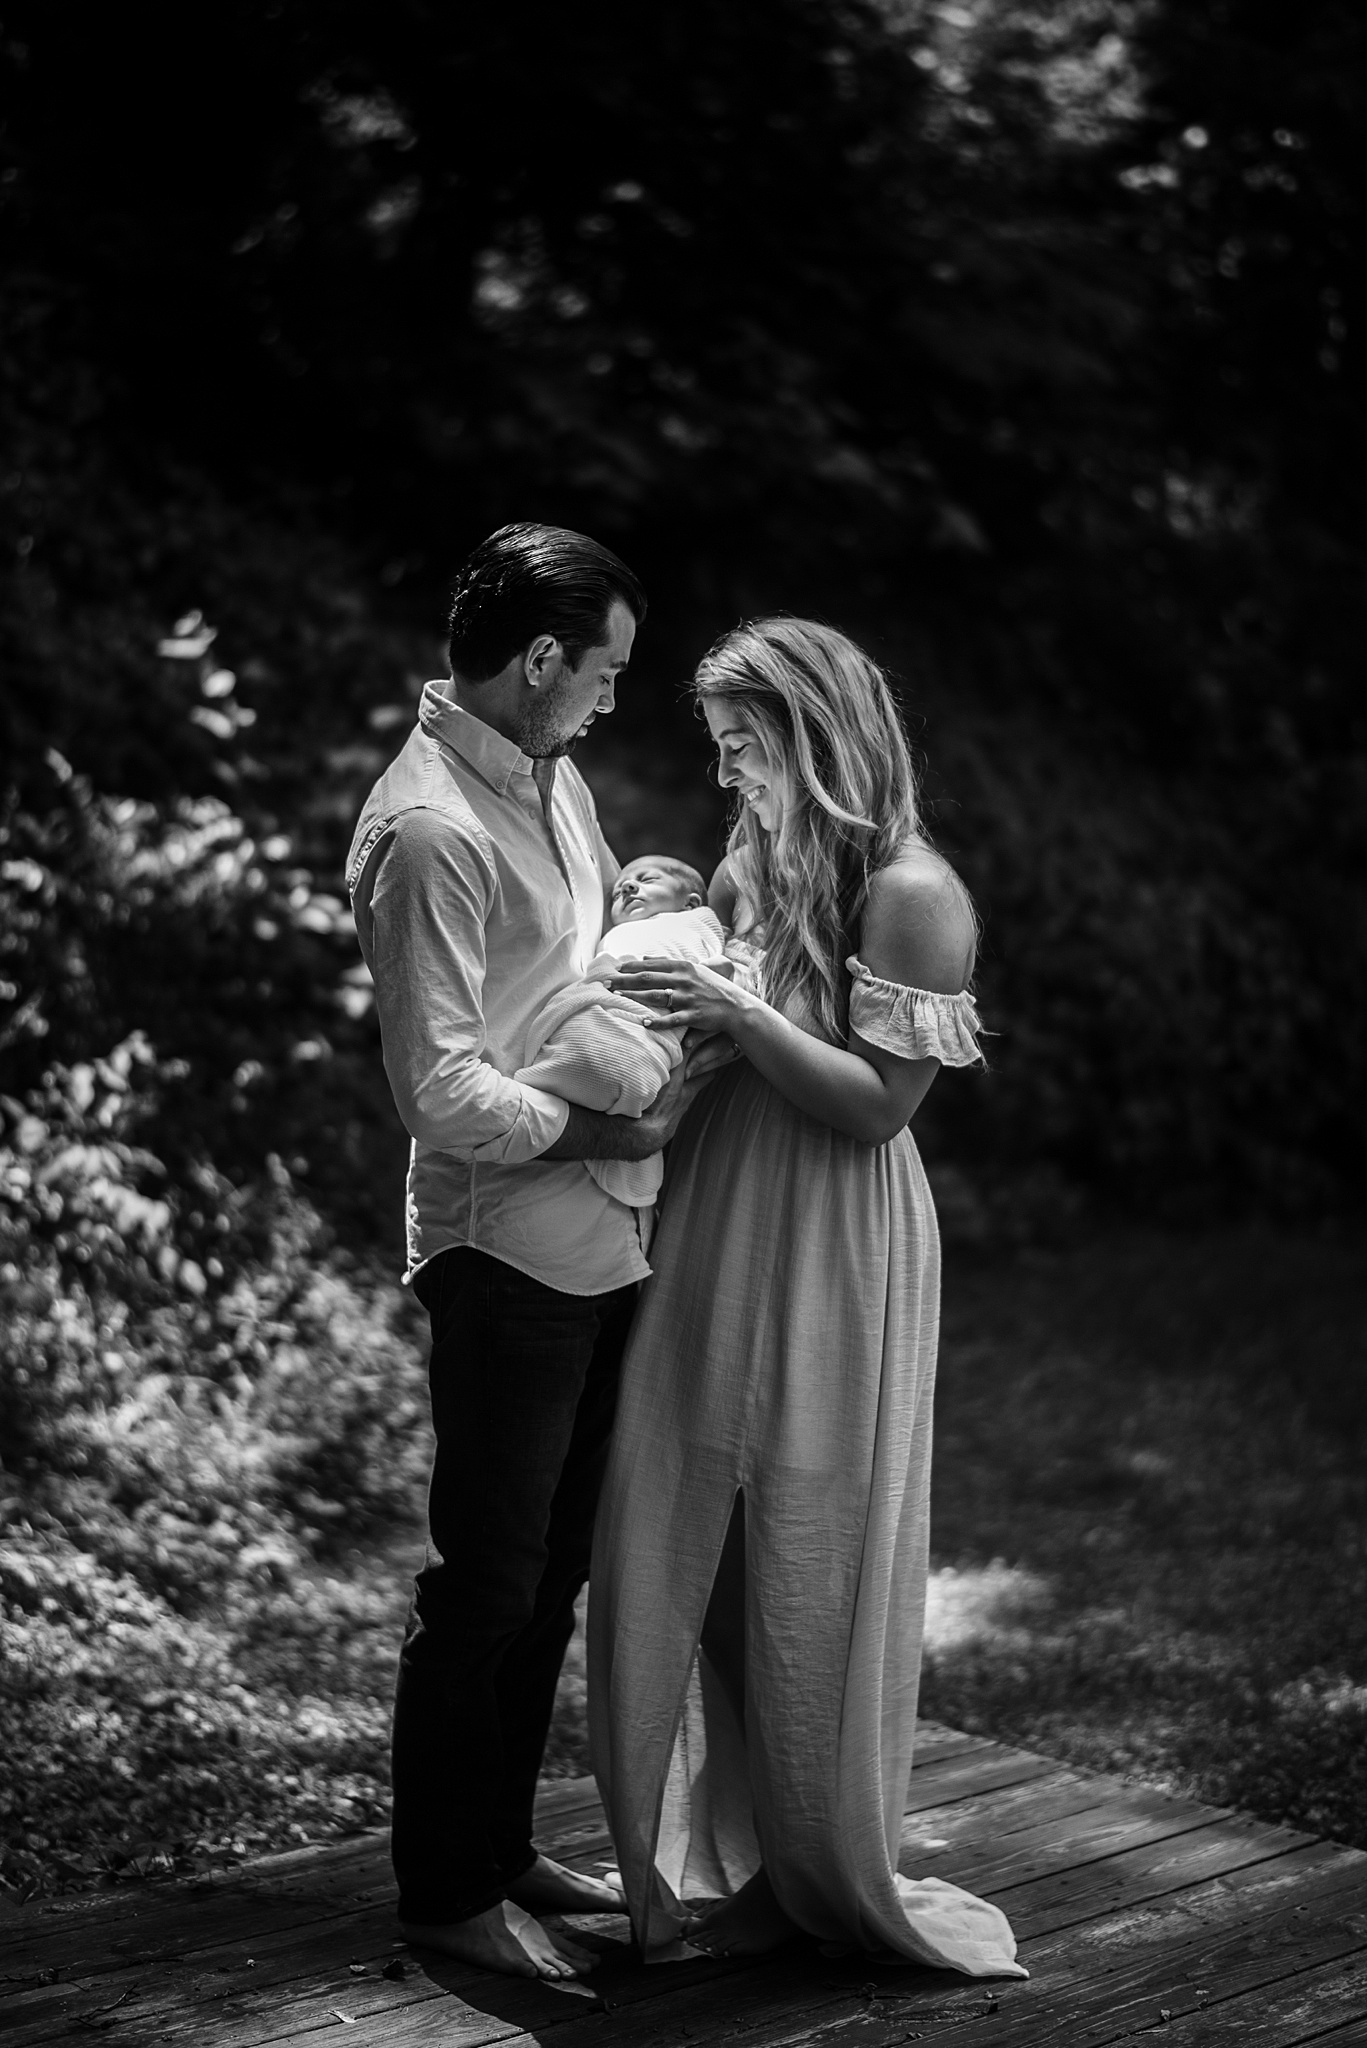 Natural-In-Home-Lifestyle-Newborn-Family-Photographer-Pittsburgh-Rachel-Rossetti-Photography_0014.jpg